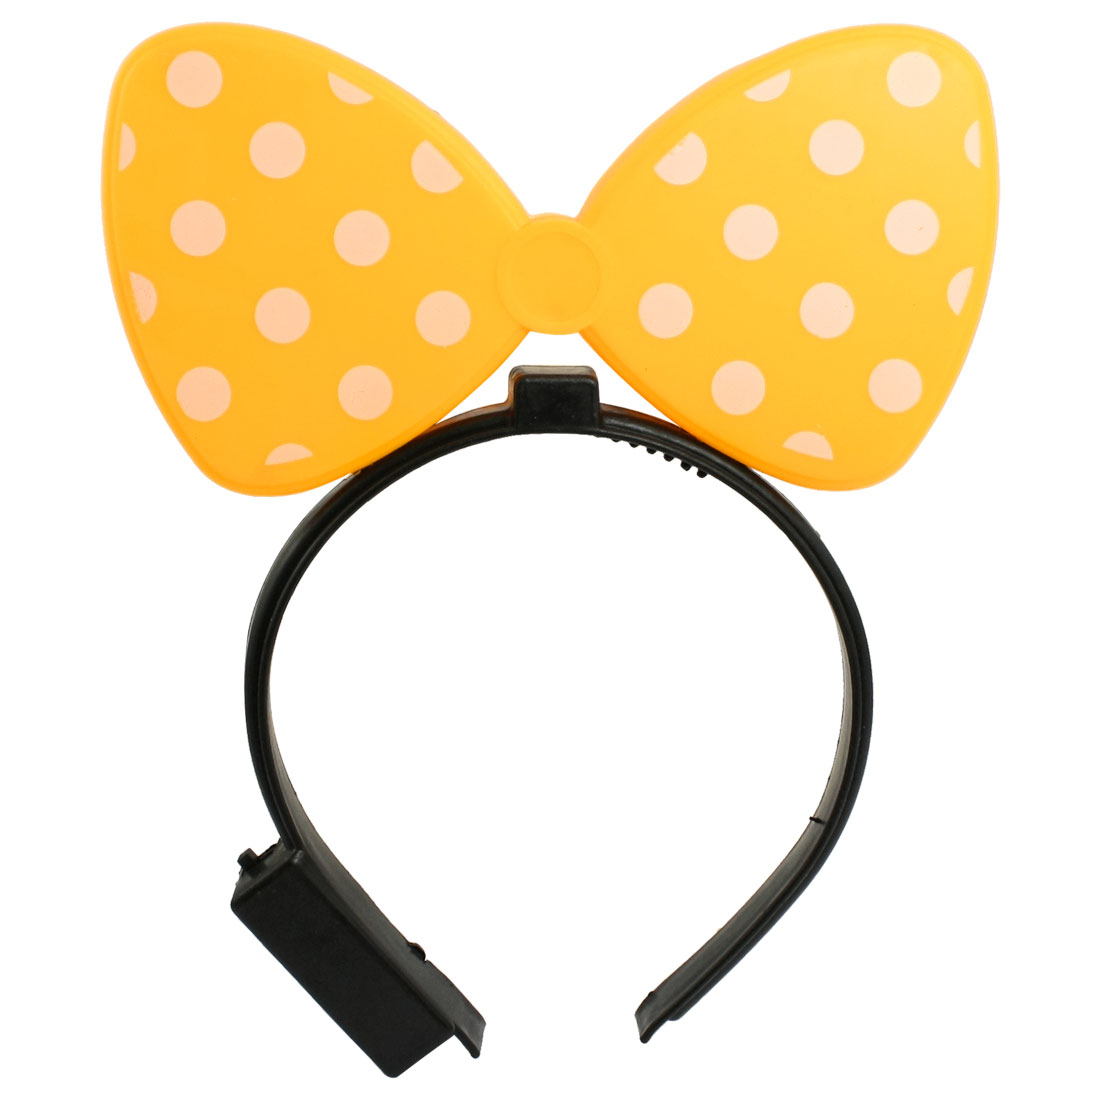 Flashing 2 LEDs White Light Yellow Bowknot Decor Plastic Hair Band for Lady